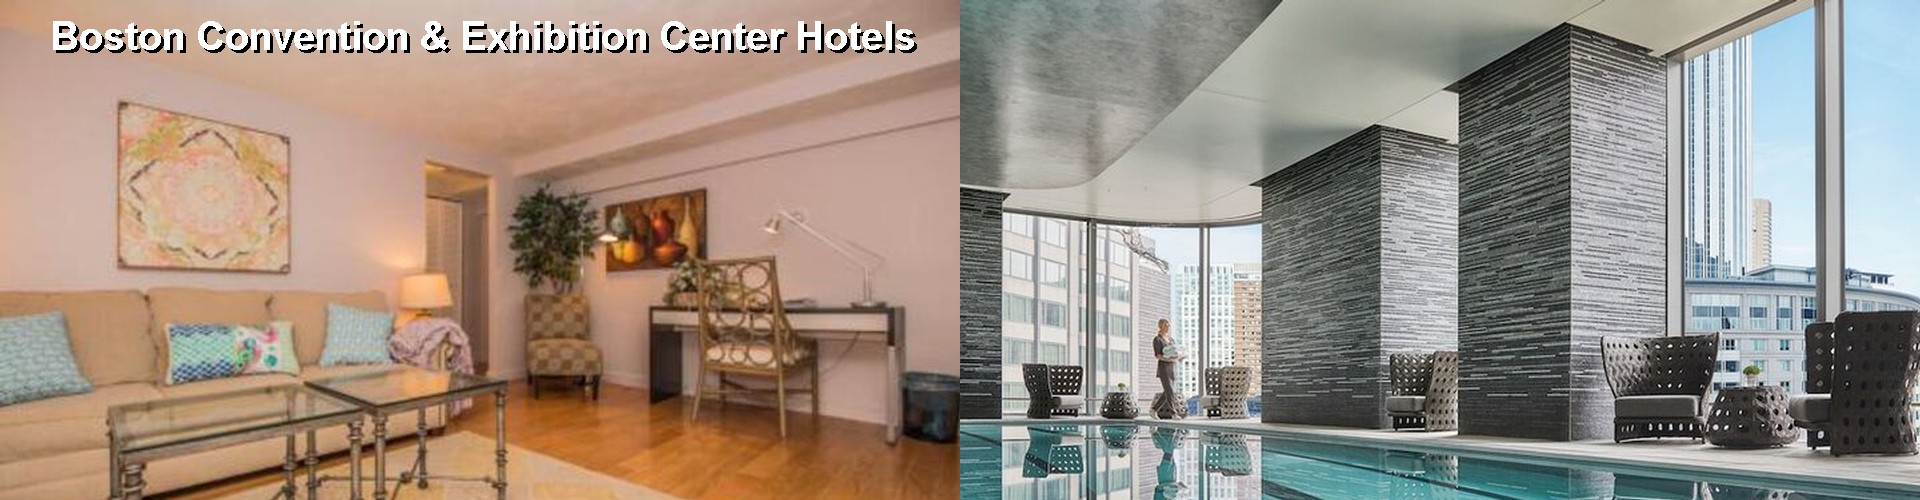 5 Best Hotels near Boston Convention & Exhibition Center